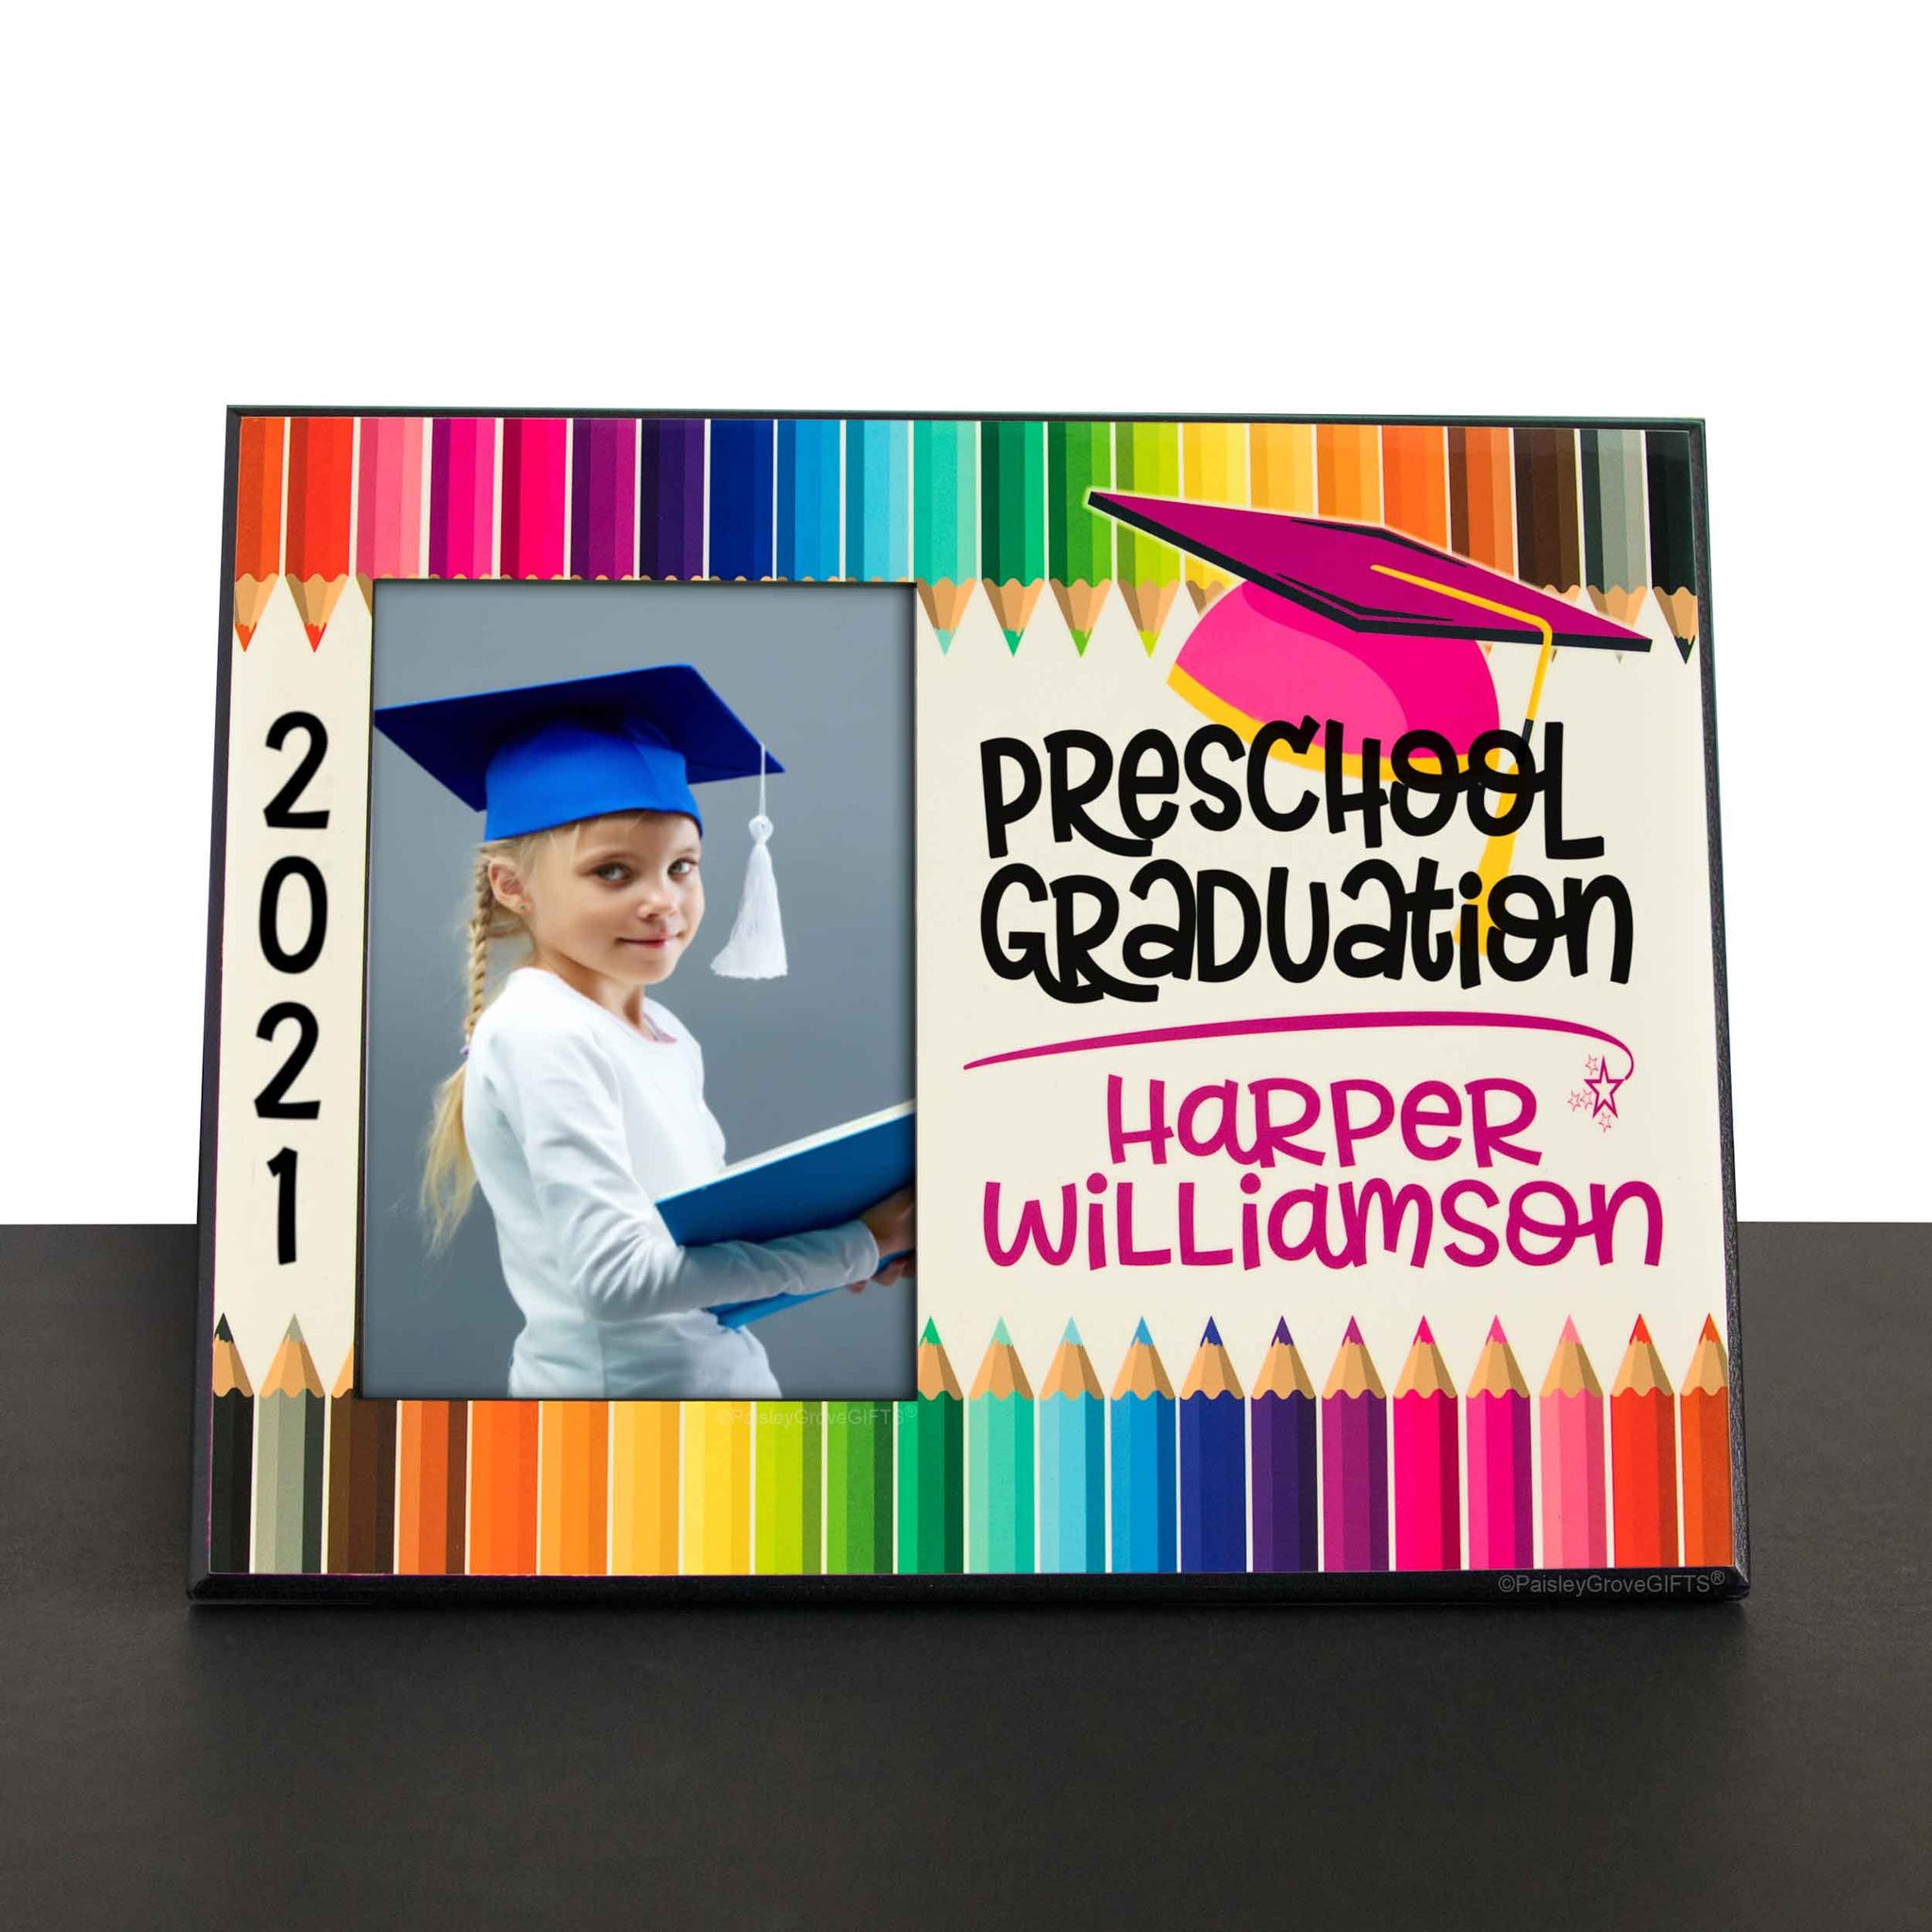 CopyrightPaisleyGroveGIFTS S228d Sentimental gift for preschool graduation personalized gift for Girls